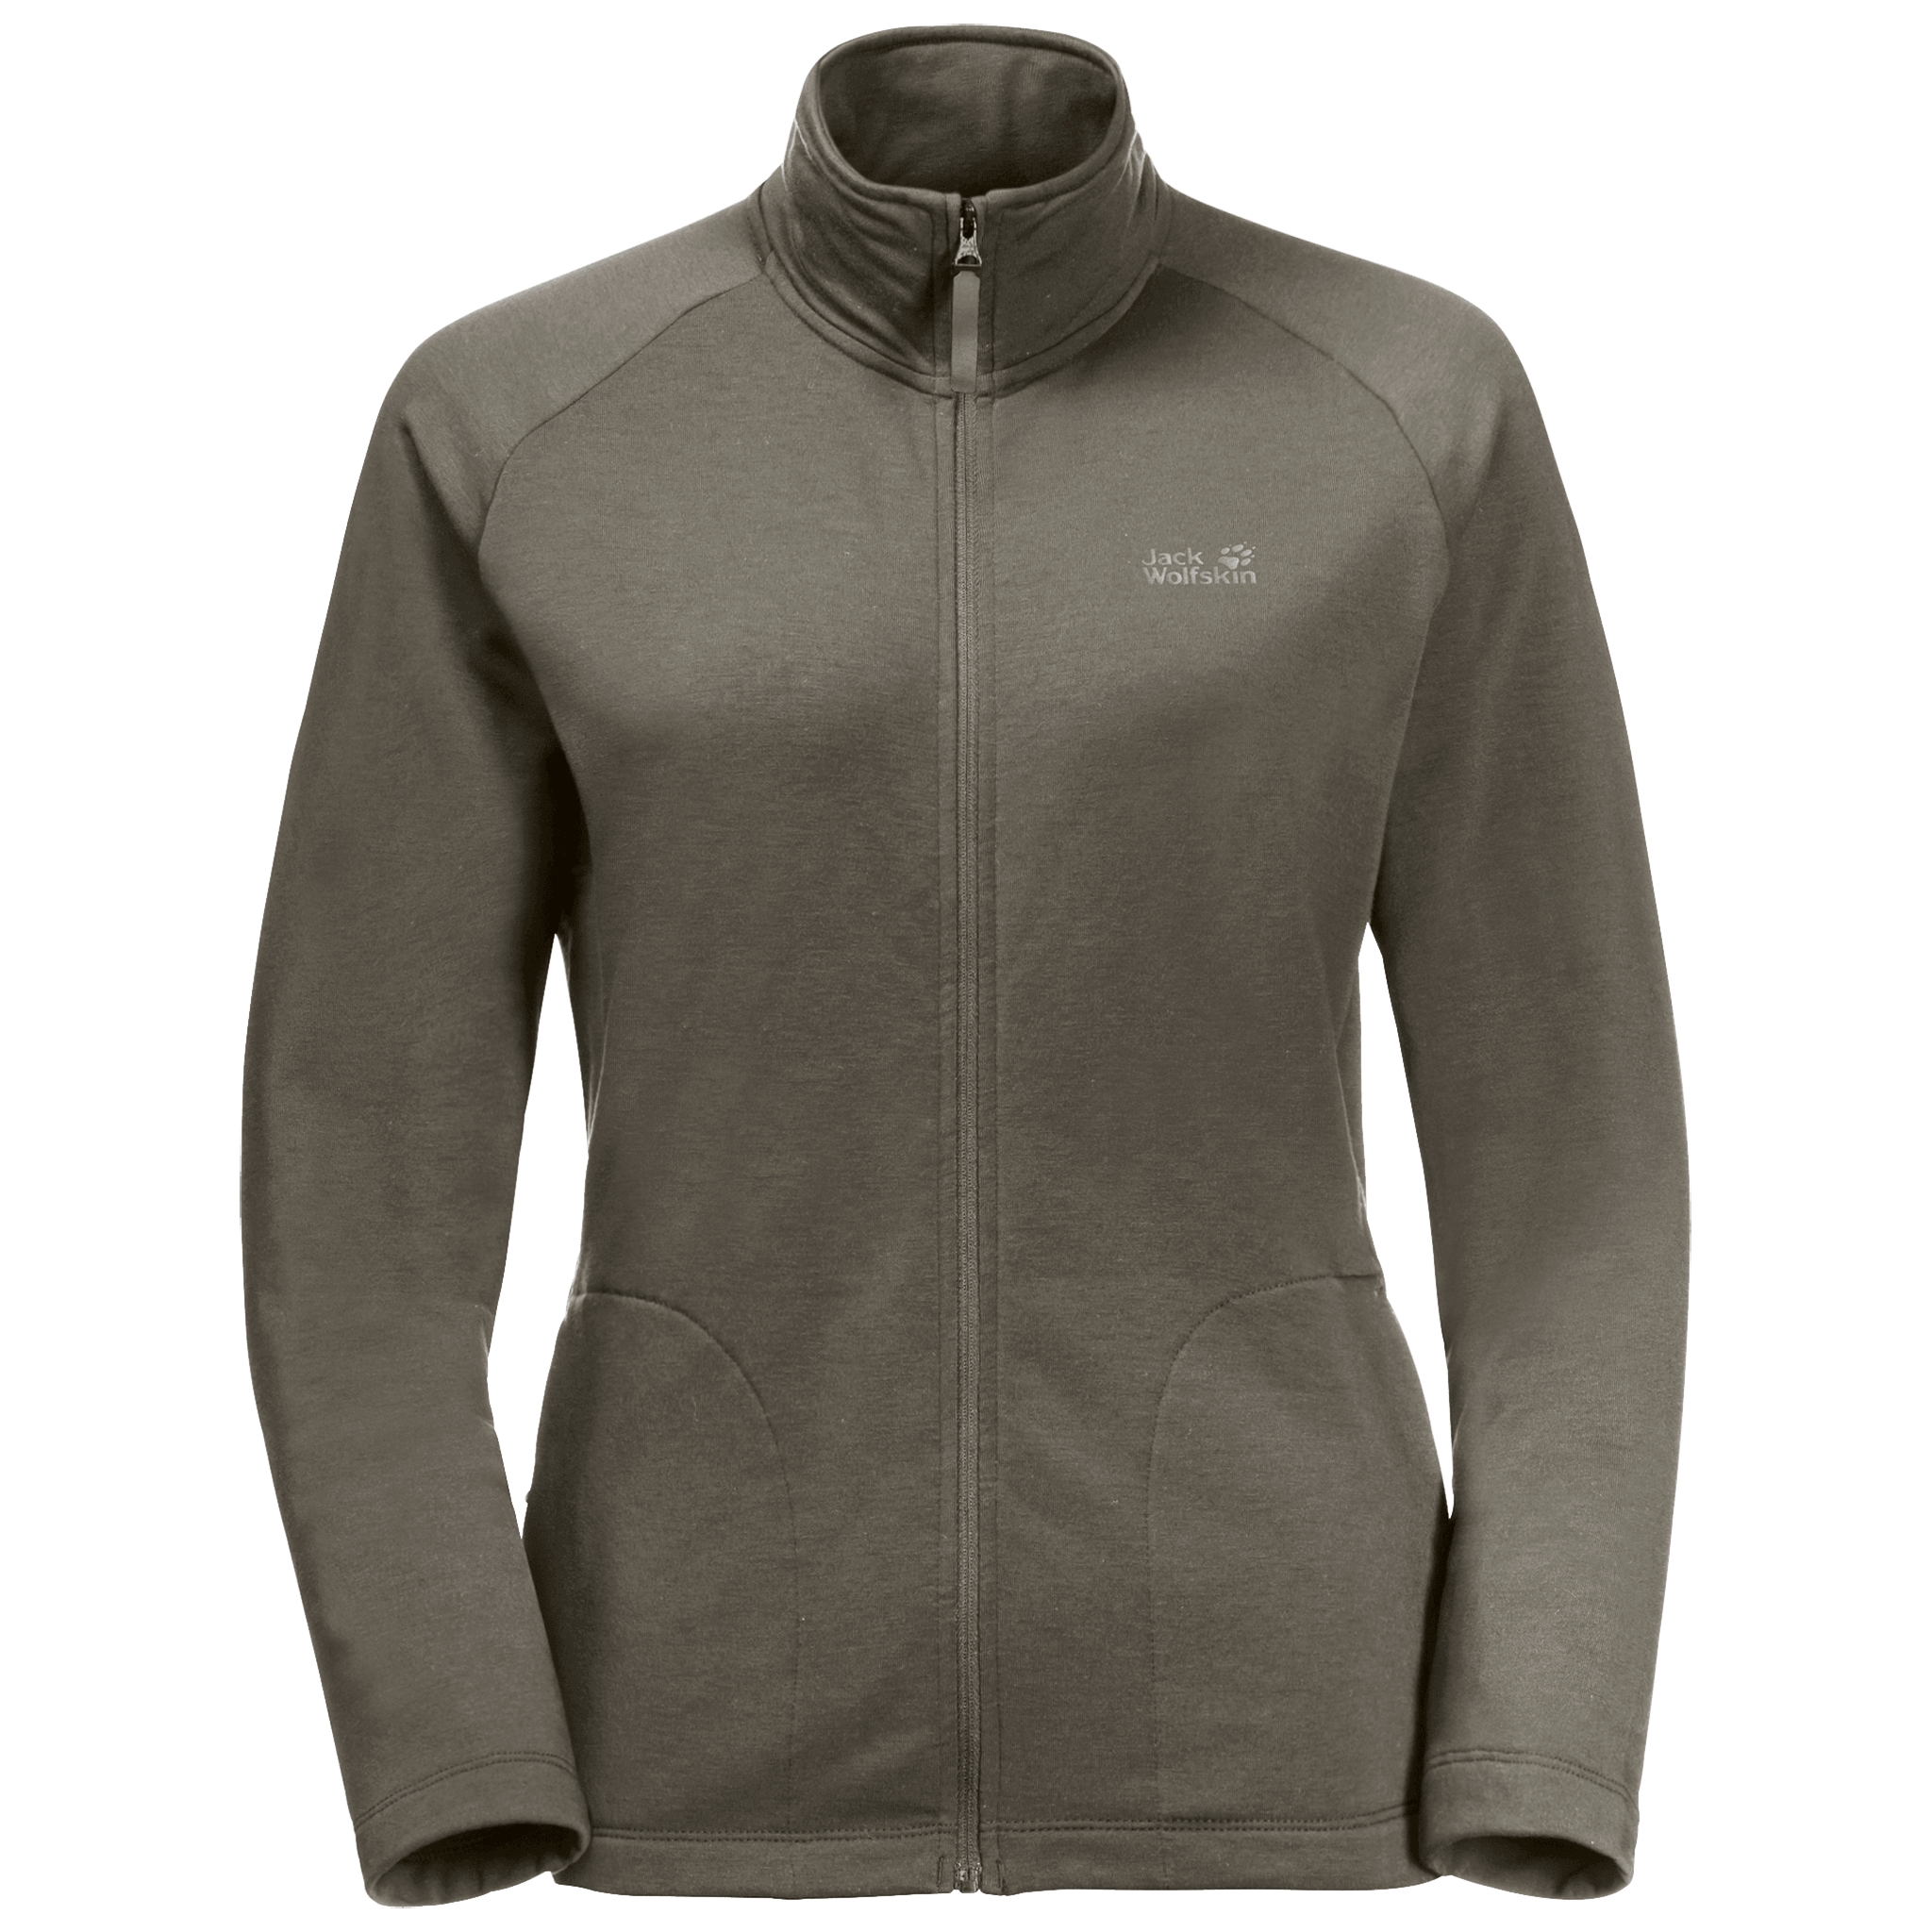 Granite Ultralight Packable Fleece